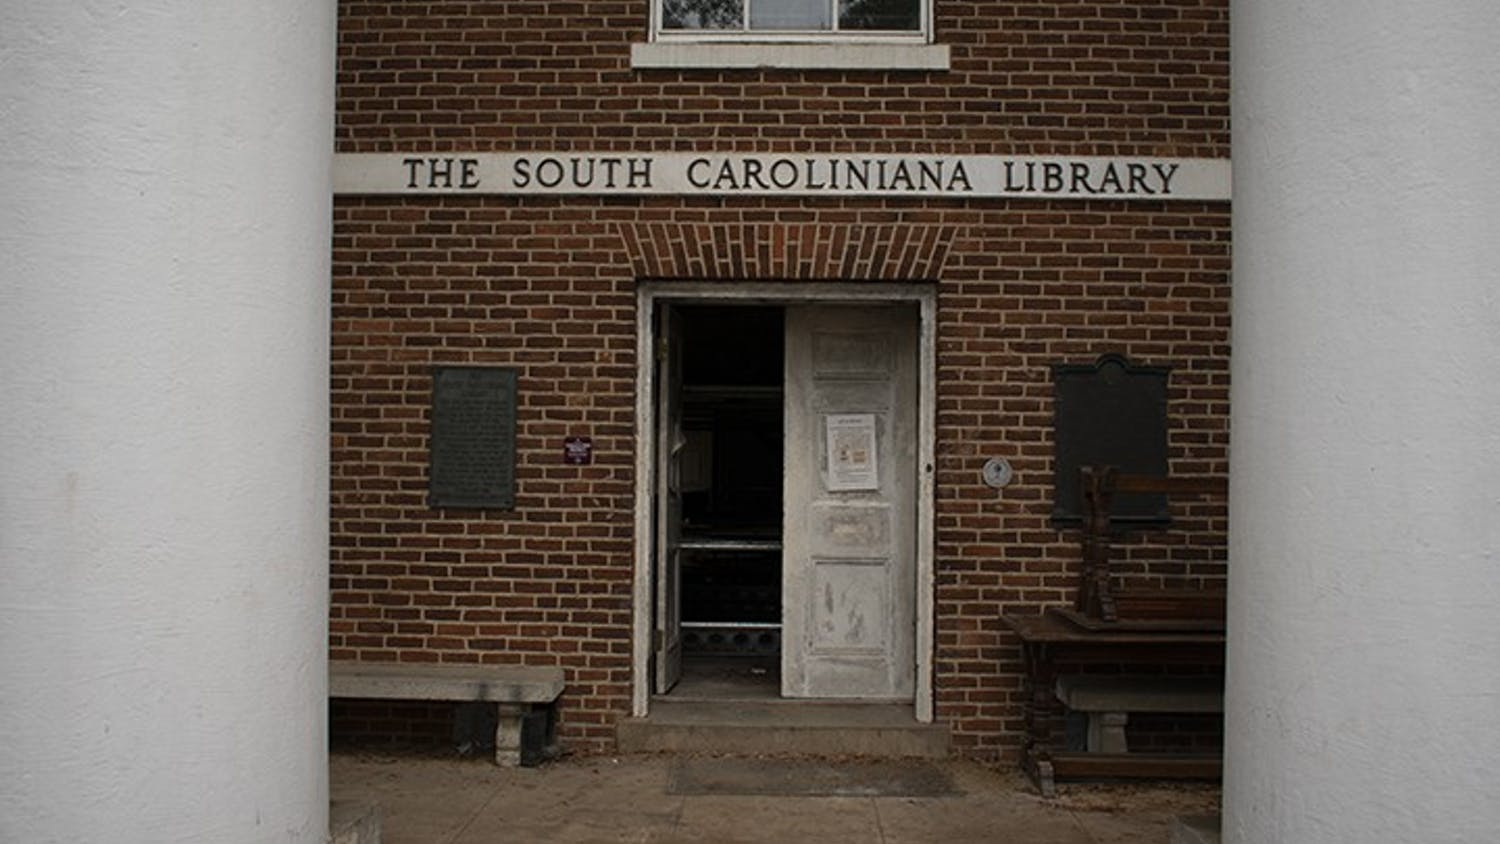 The South Caroliniana Library located on the Horseshoe is currently undergoing construction. The library is often used as a place for research.